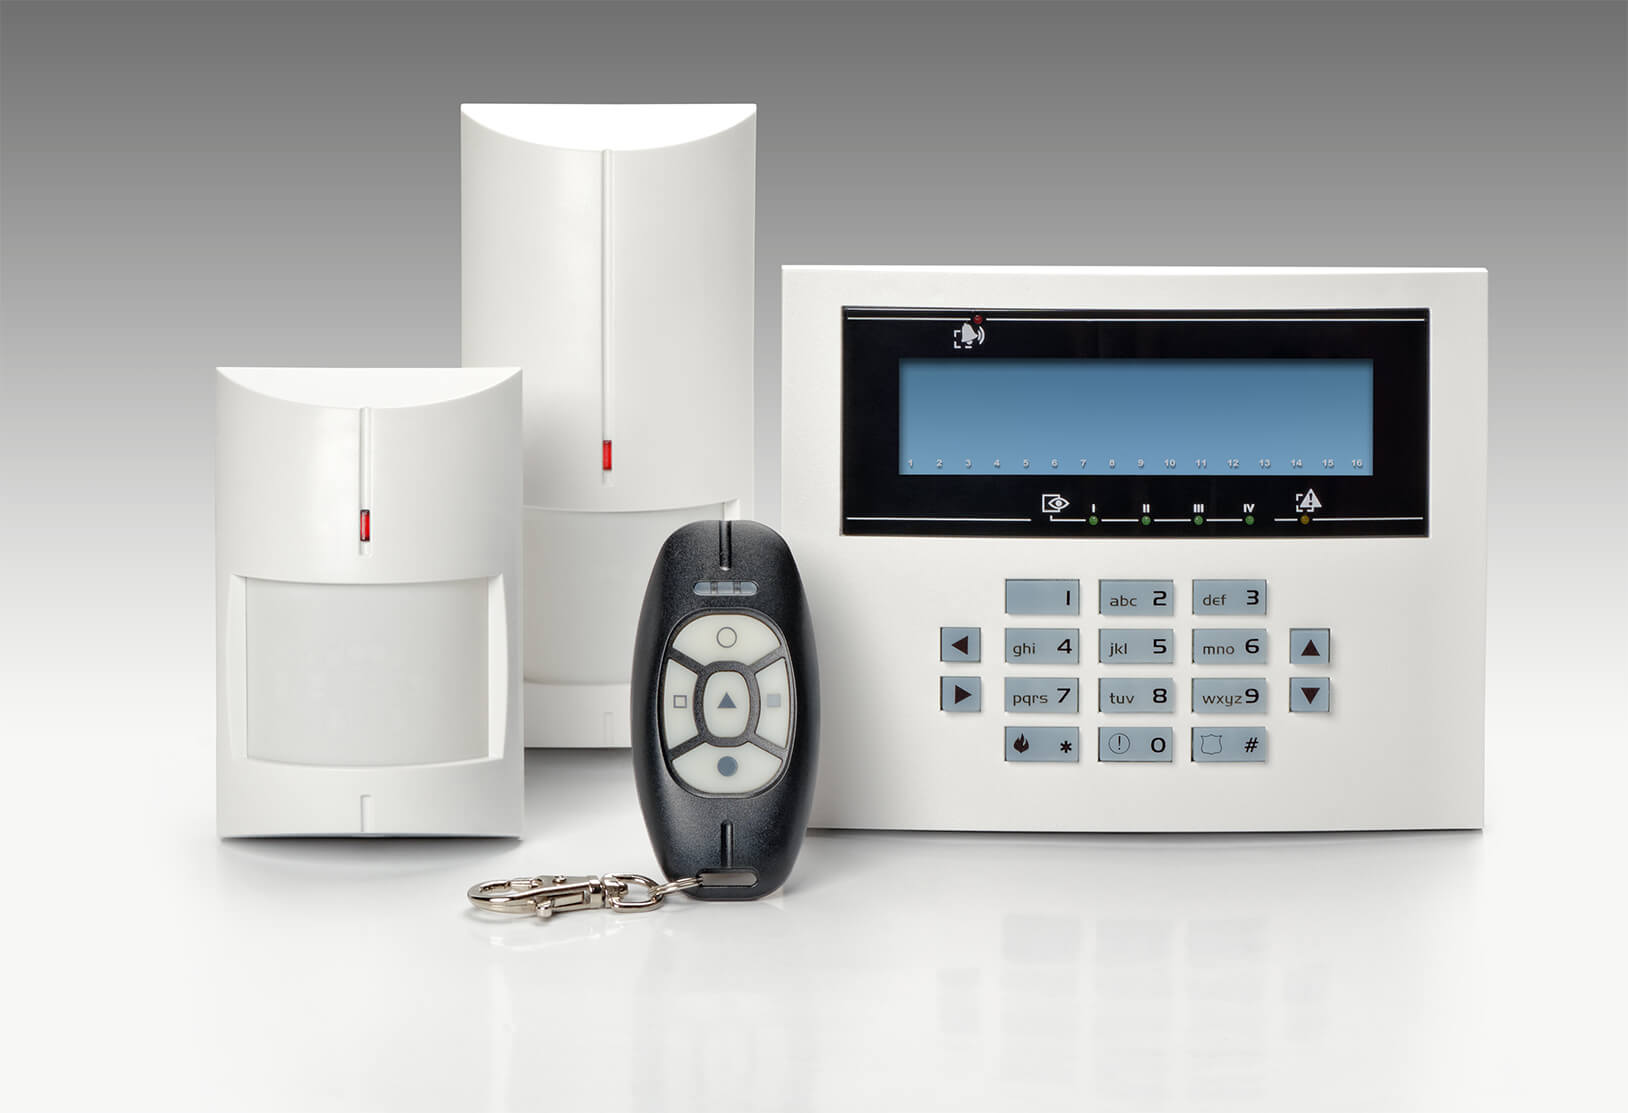 Business & Residential NSI / NACOSS Approved Burglar Alarms In Finsbury Park N4 - Local Finsbury Park N4 security company.Call 02078872244 - Dedicated to Safety & Security. Companies, shops and homes ..